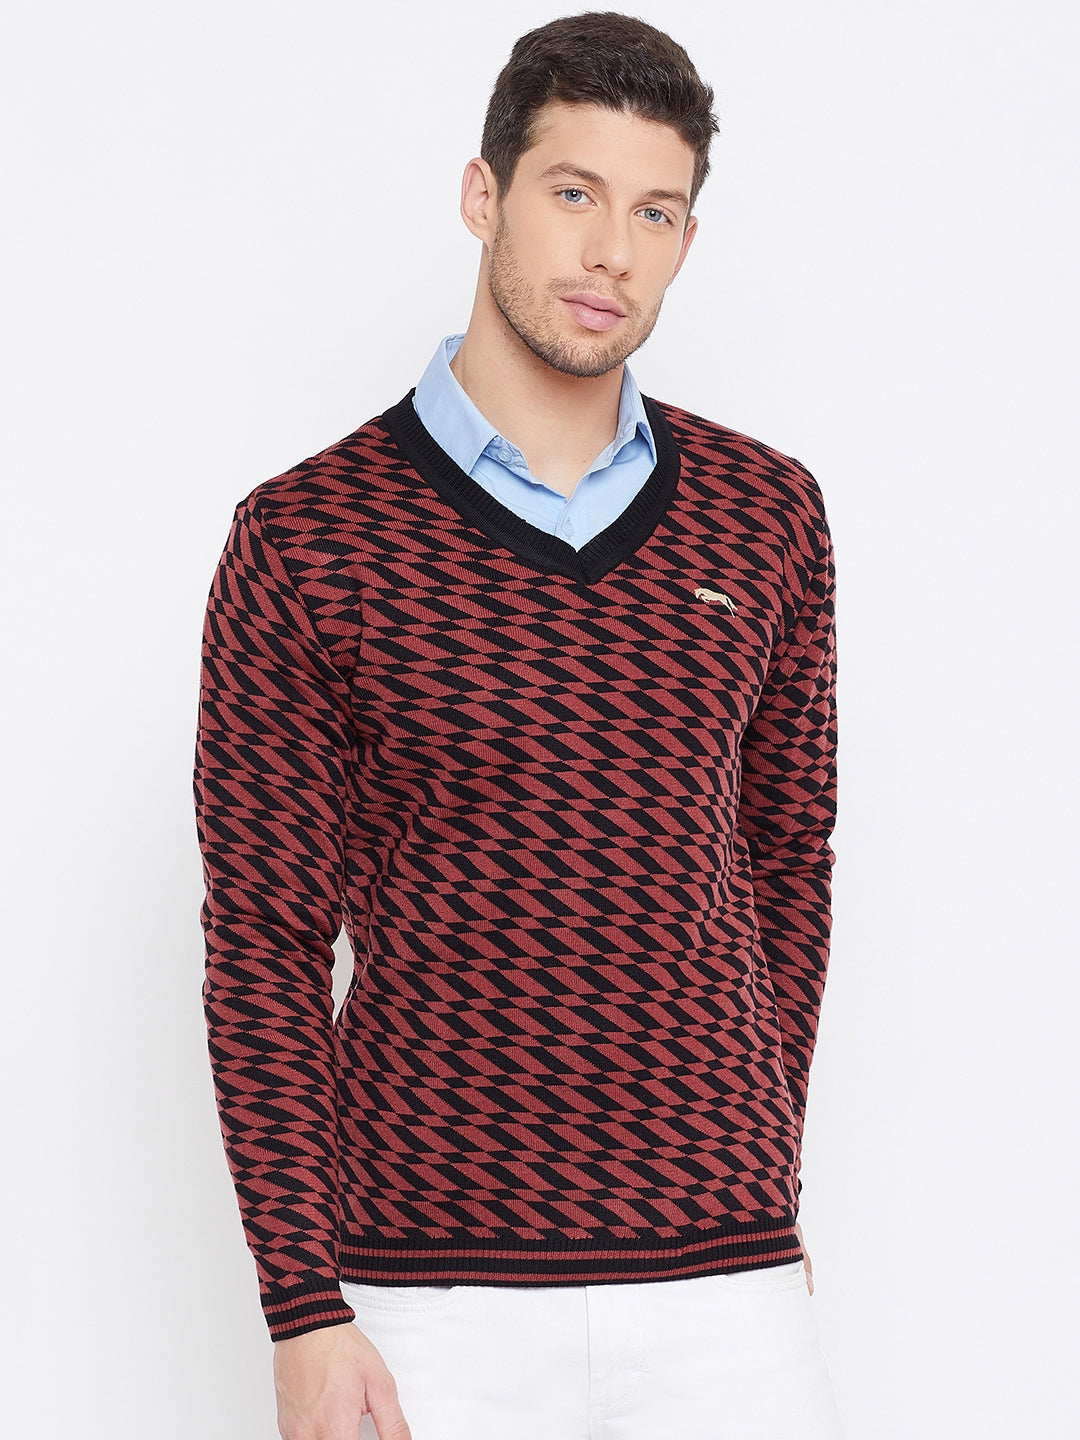 JUMP USA Men Red Colourblocked Casual Sweaters - JUMP USA